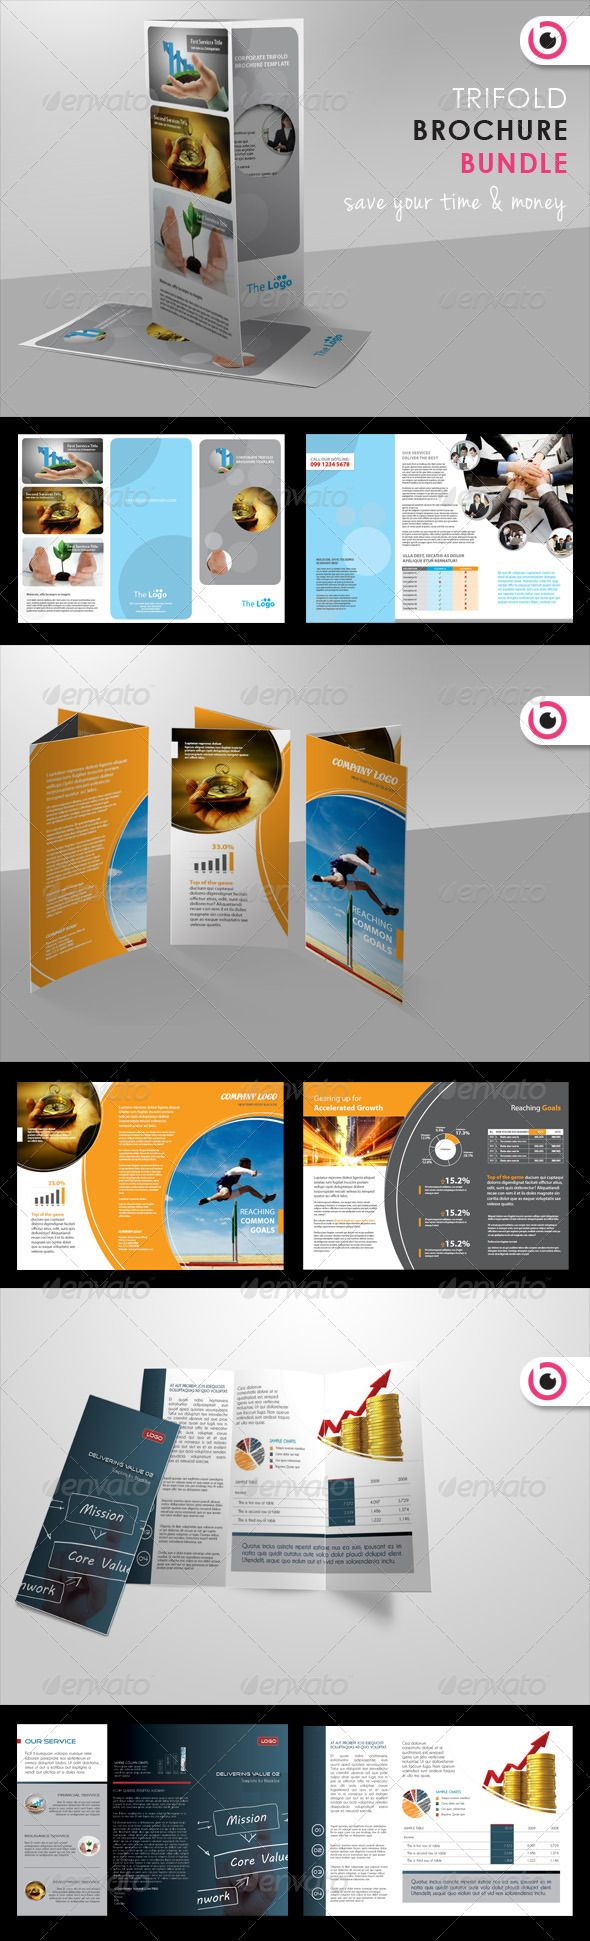 Best Financial Design Images On   Catalog Editorial